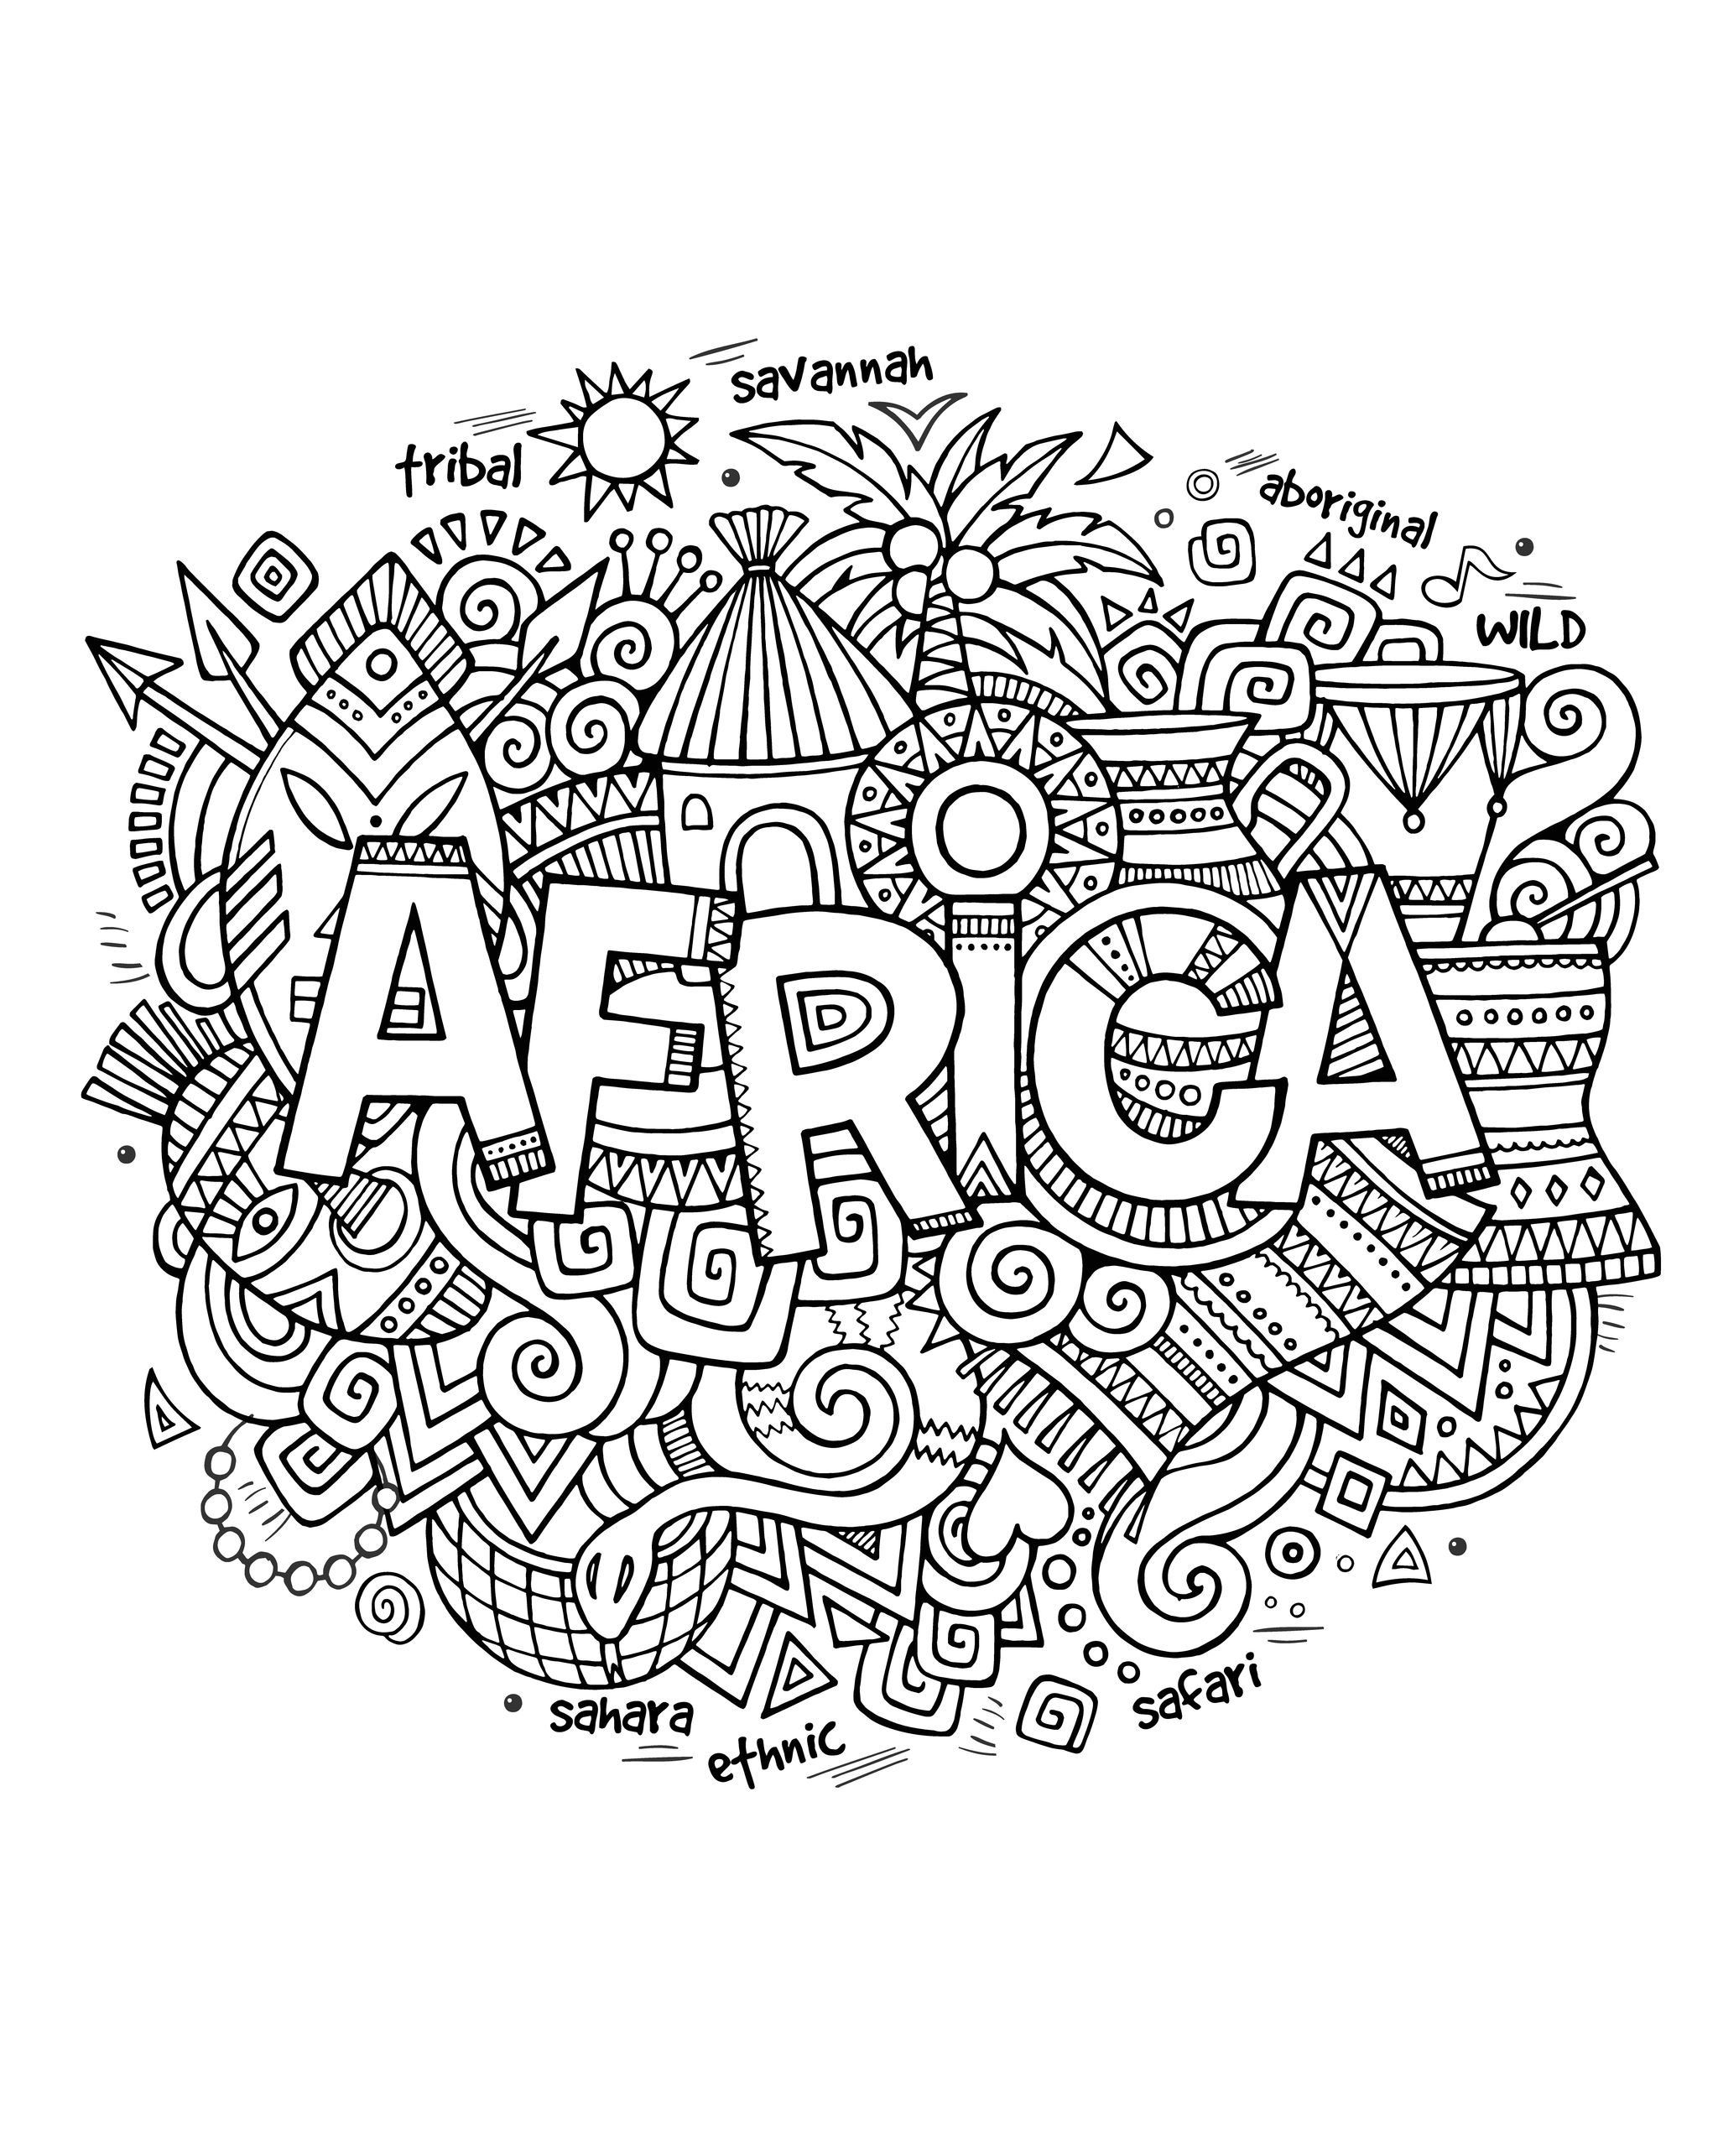 Online virtual coloring - Coloring Books Africa Coloring Pages In Property Online